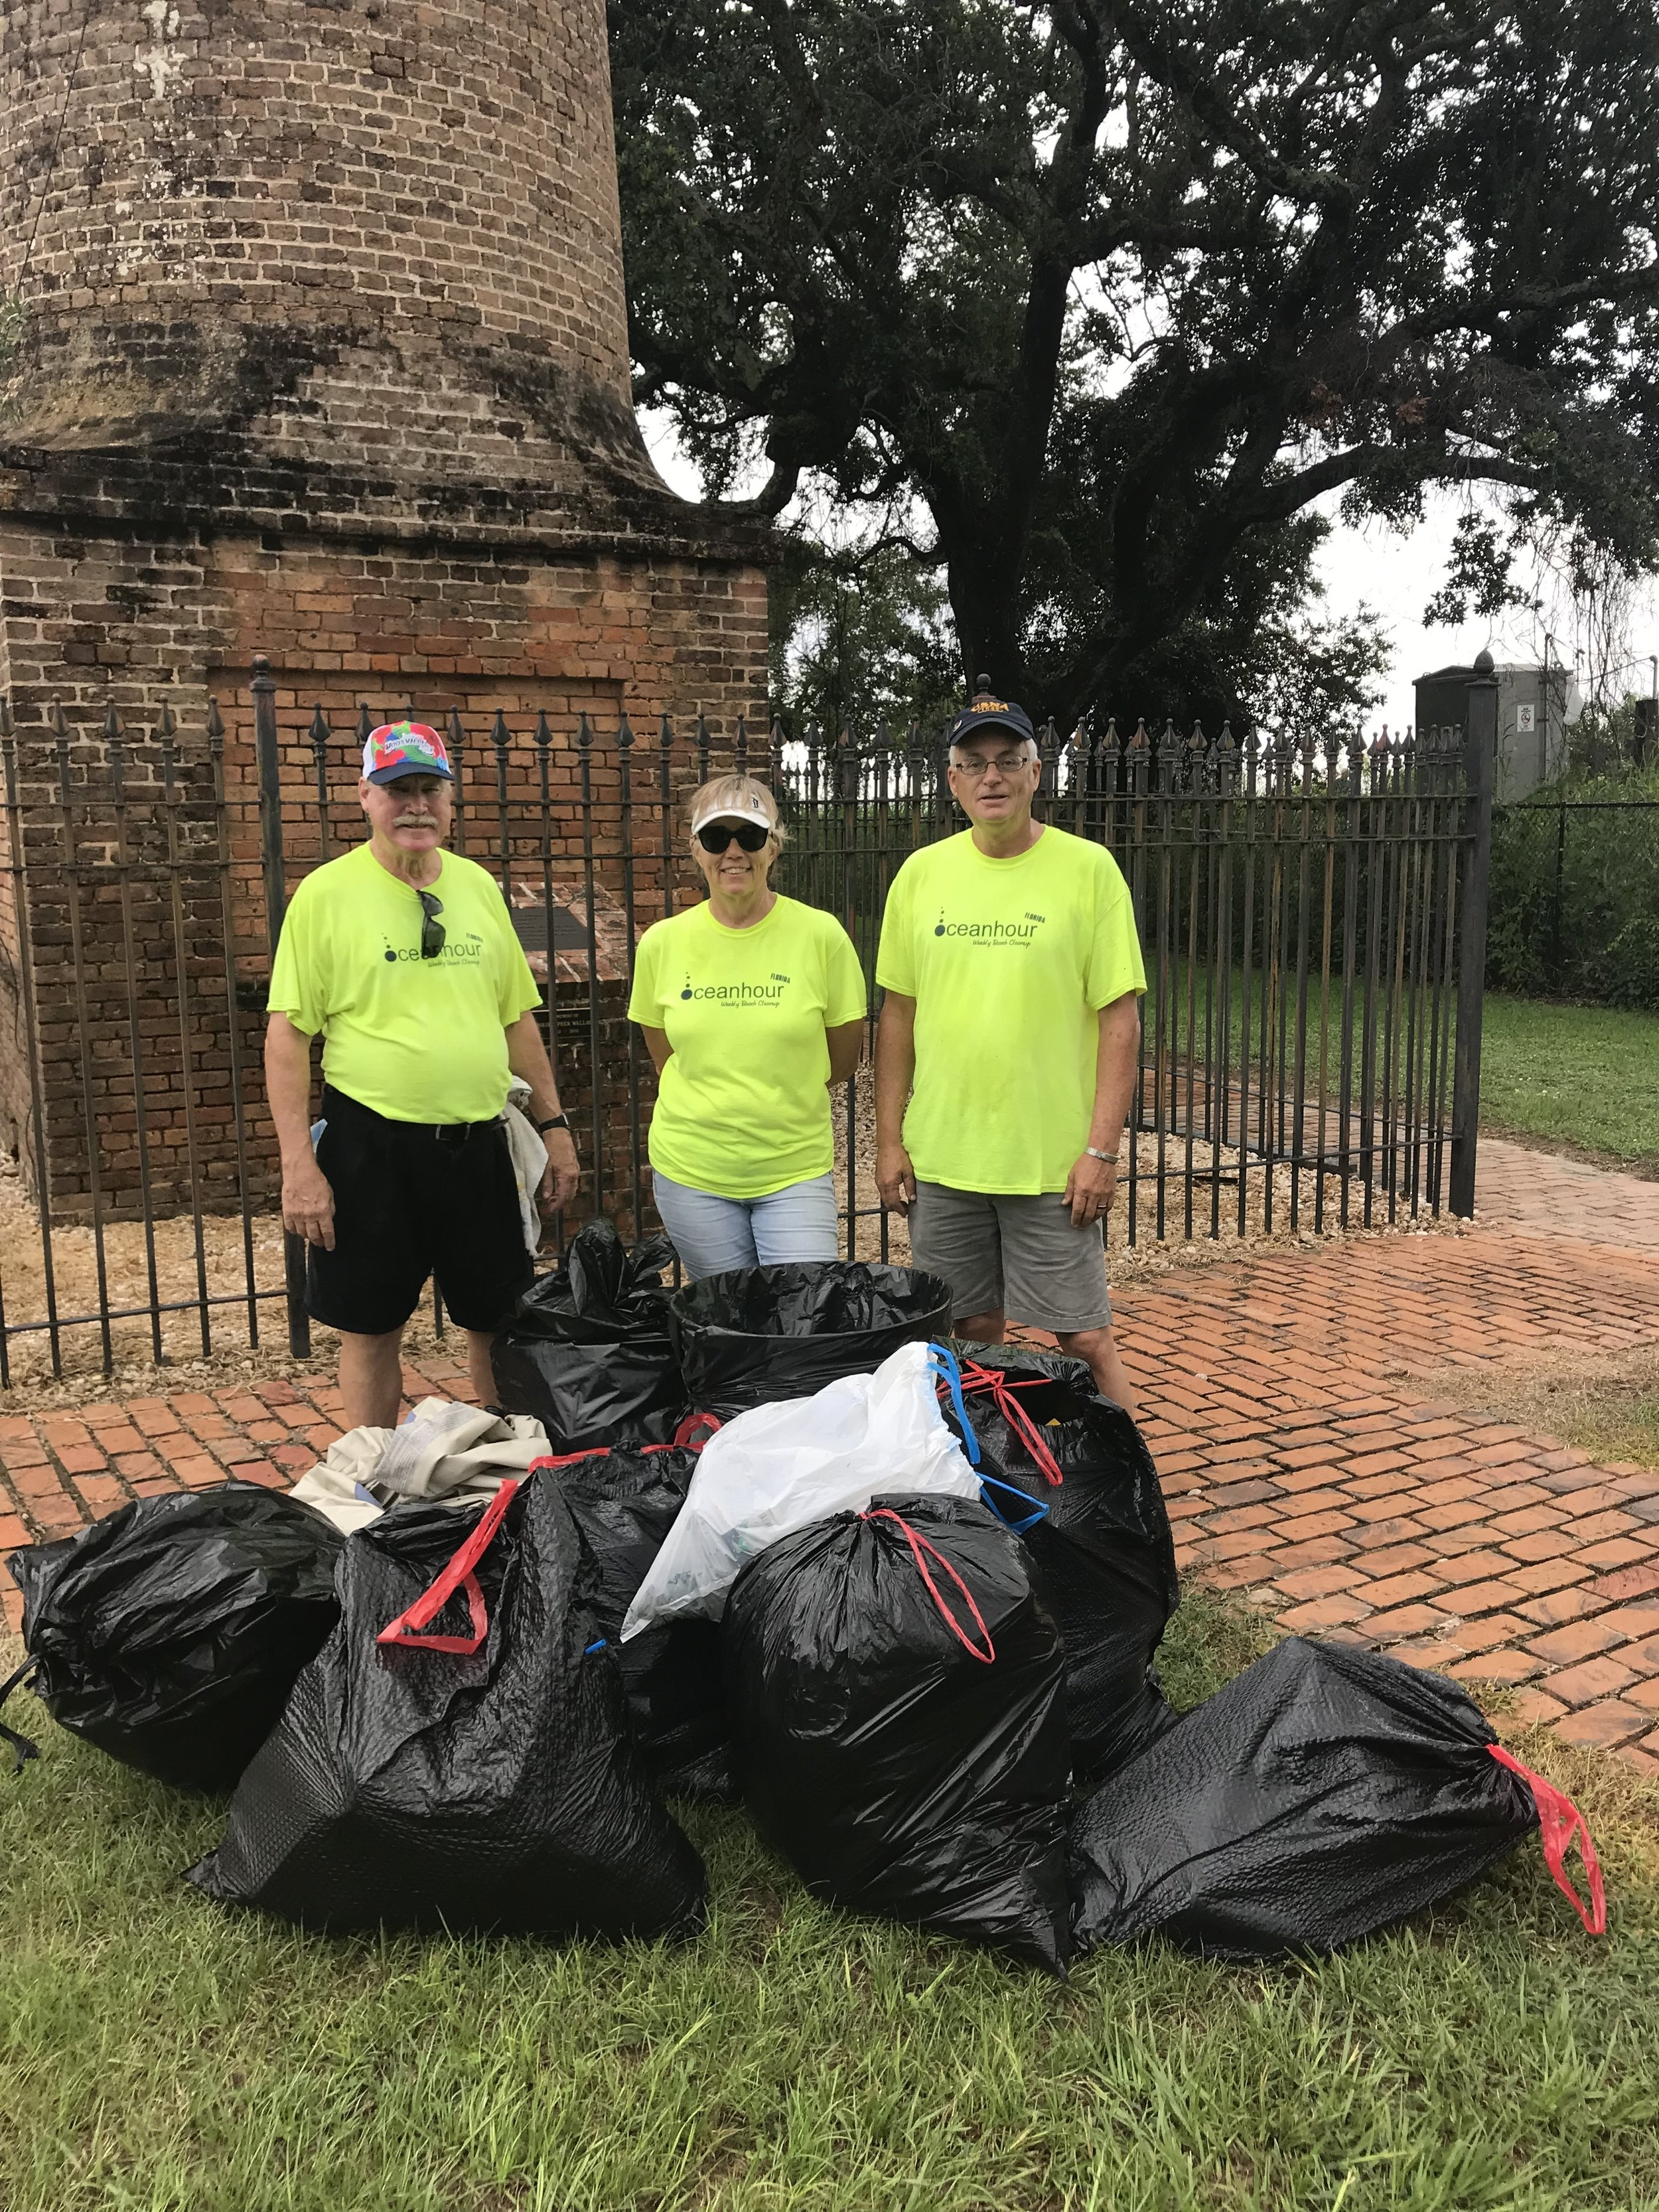 - 34 volunteers picked up 299 lbs of trash at two Scenic Hwy parks.The humidity and mosquitos were challenging!